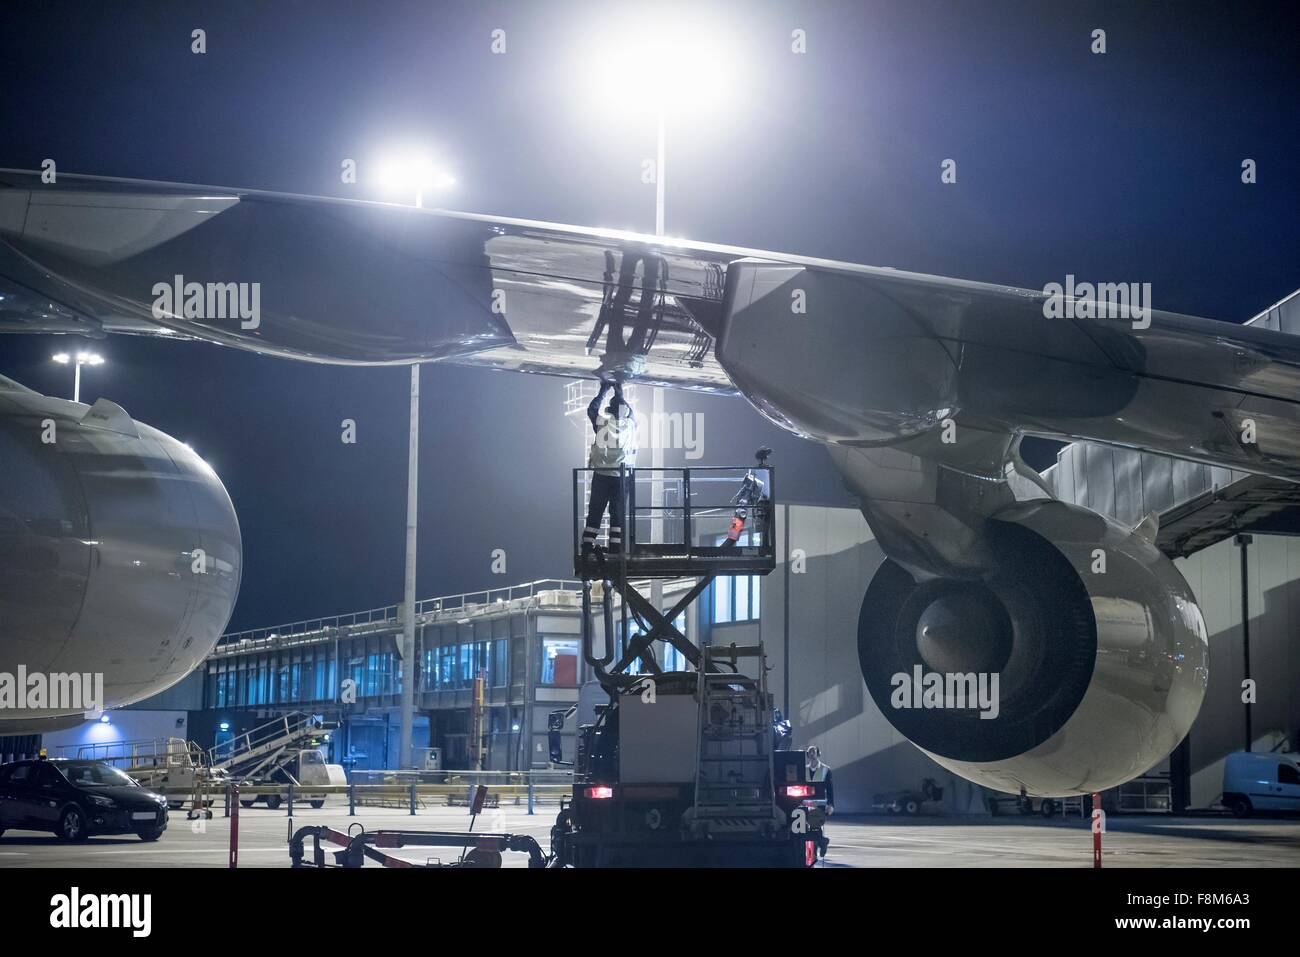 Ground crew member refuelling A380 aircraft at night - Stock Image